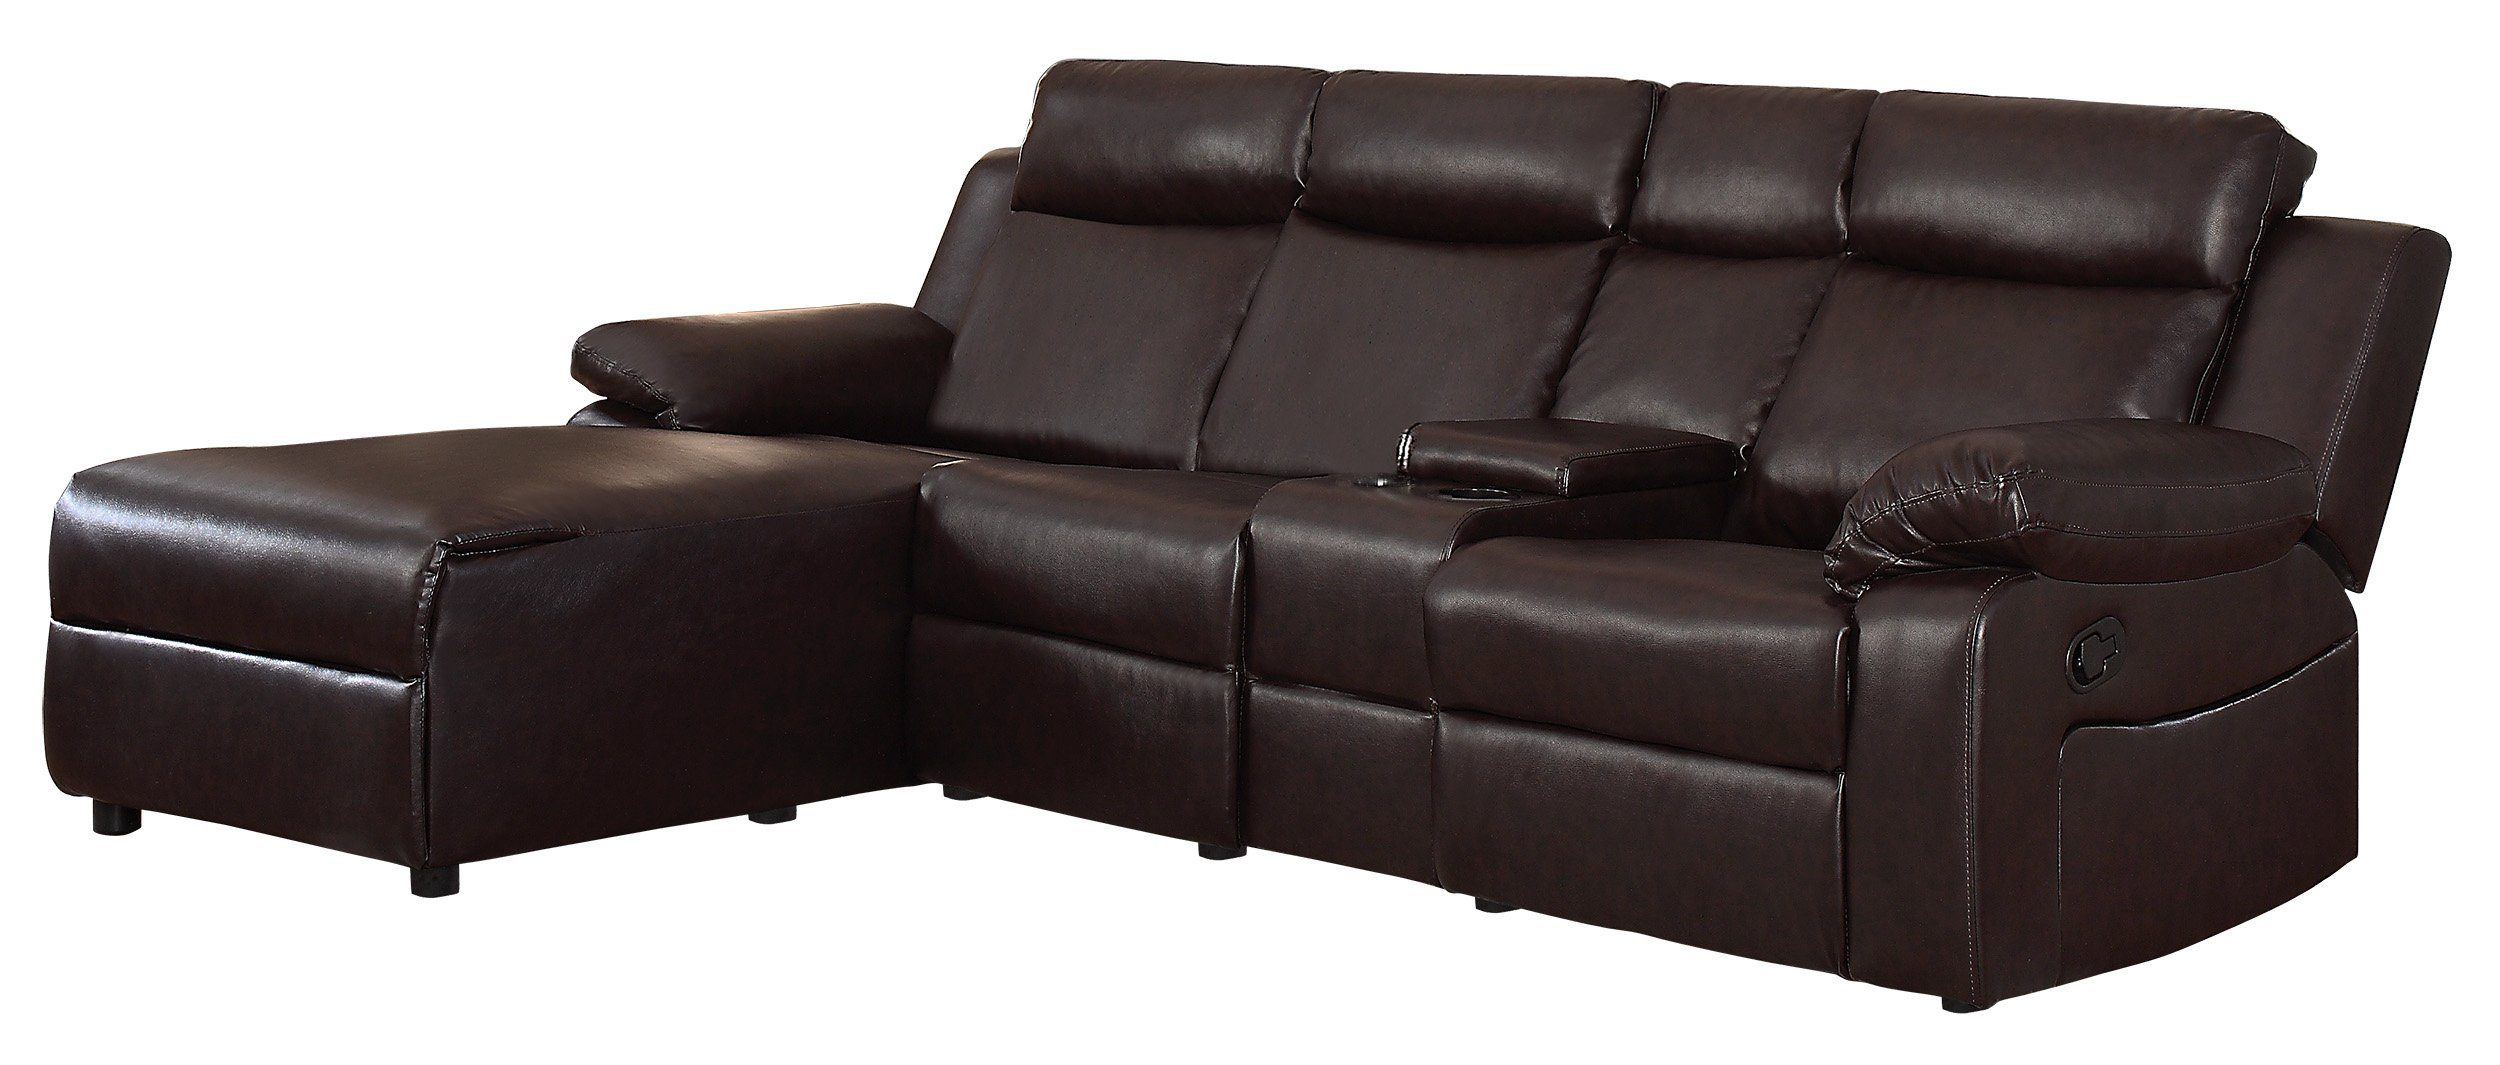 Get Quotations Homelegance Dalal 102 Reclining Sectional With Console